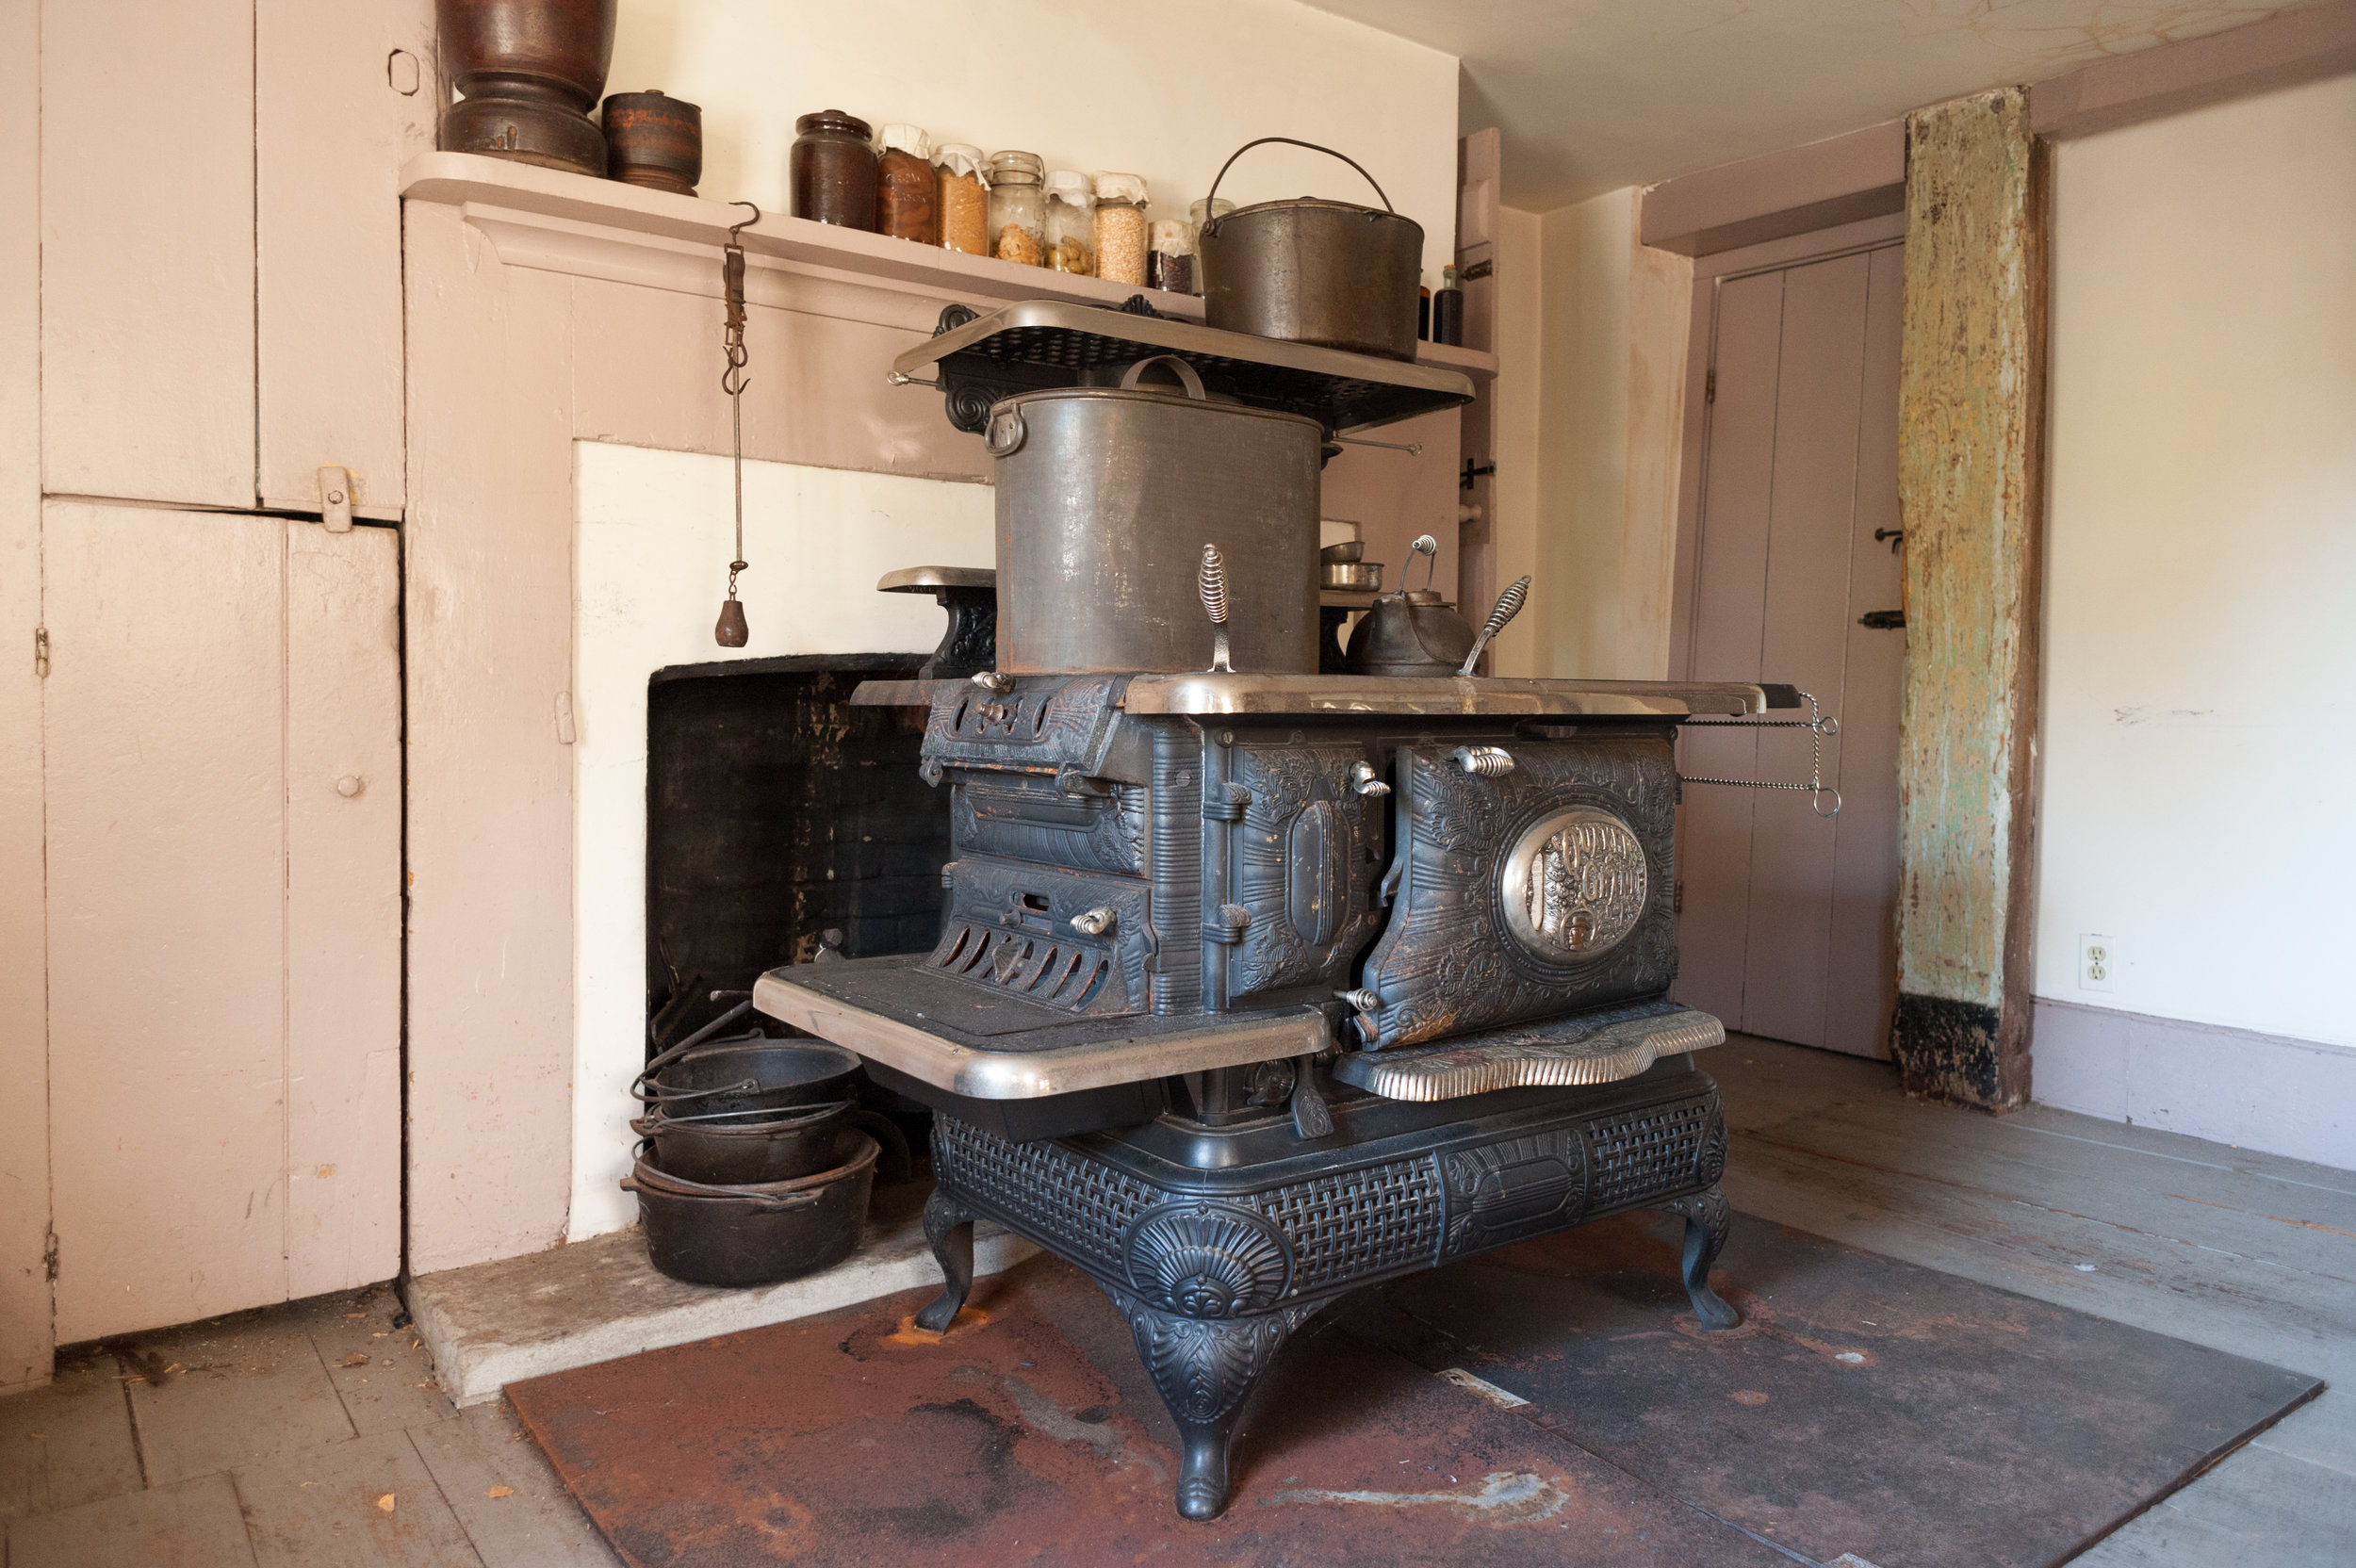 A cast iron wood burning stove was used for cooking and heating parts of the house.